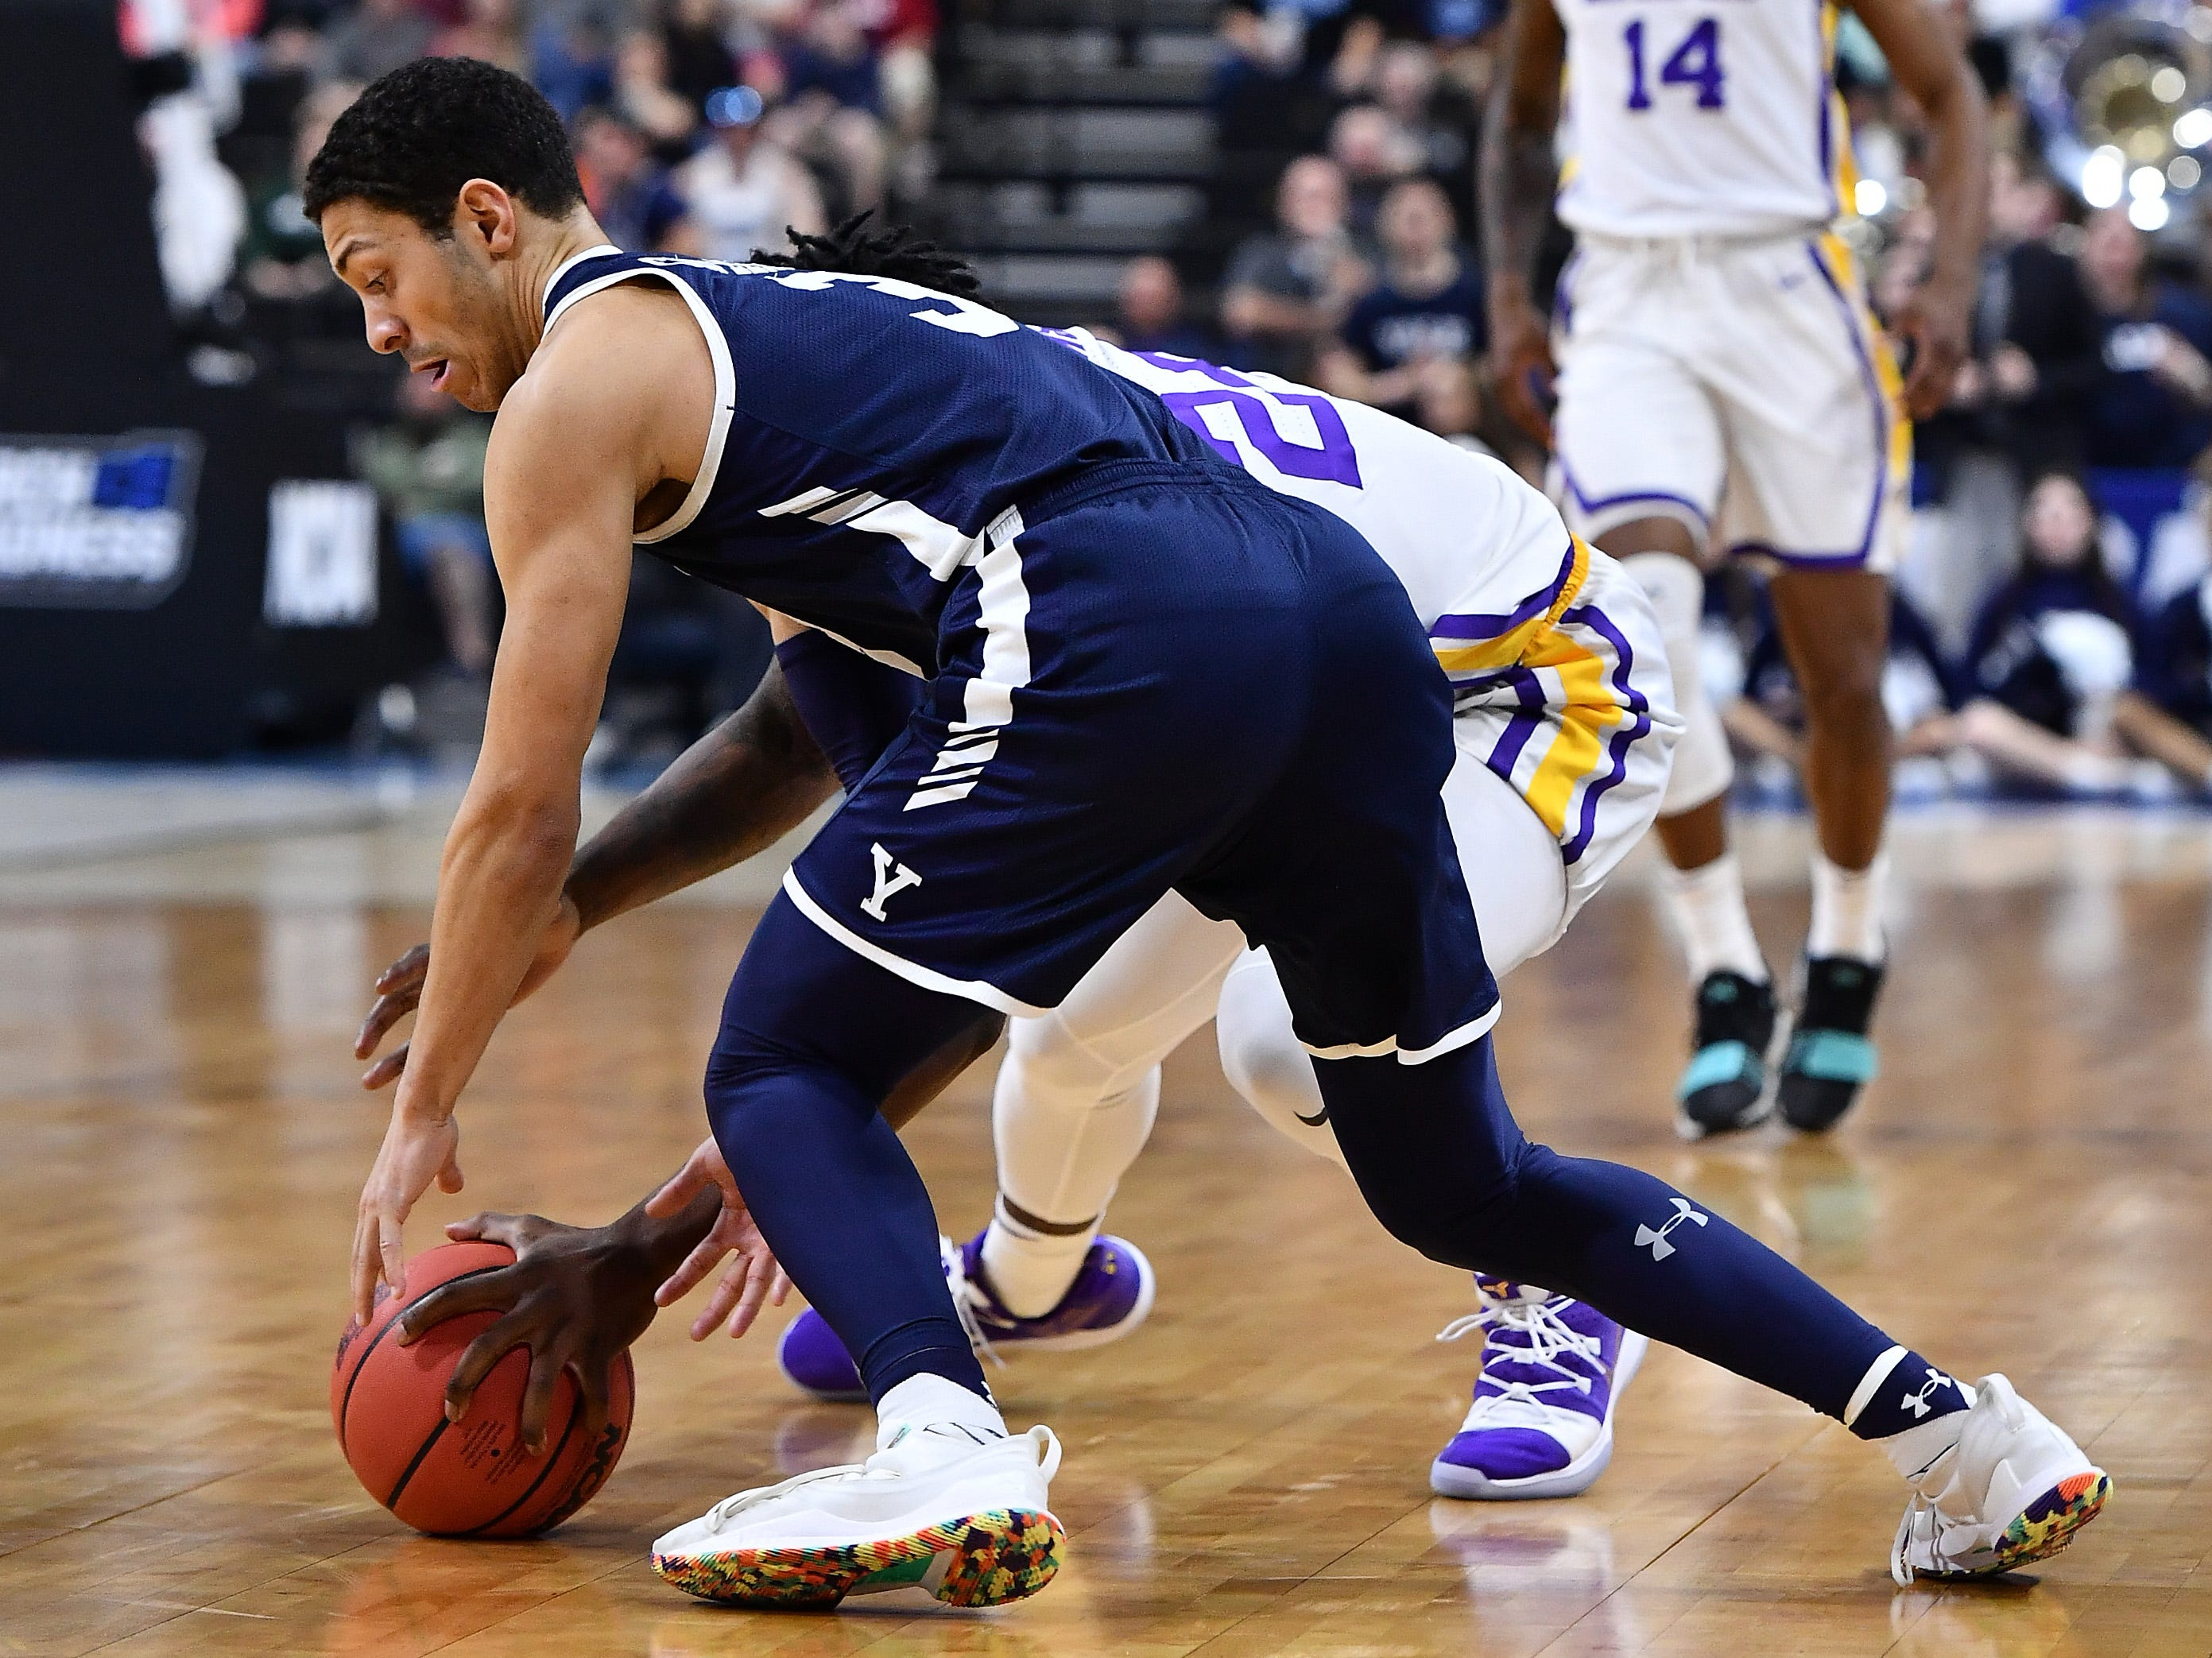 Mar 21, 2019; Jacksonville, FL, USA; Yale Bulldogs guard Alex Copeland (3) battles LSU Tigers forward Emmitt Williams (24) for a loose ball during the second half in the first round of the 2019 NCAA Tournament at Jacksonville Veterans Memorial Arena. Mandatory Credit: John David Mercer-USA TODAY Sports